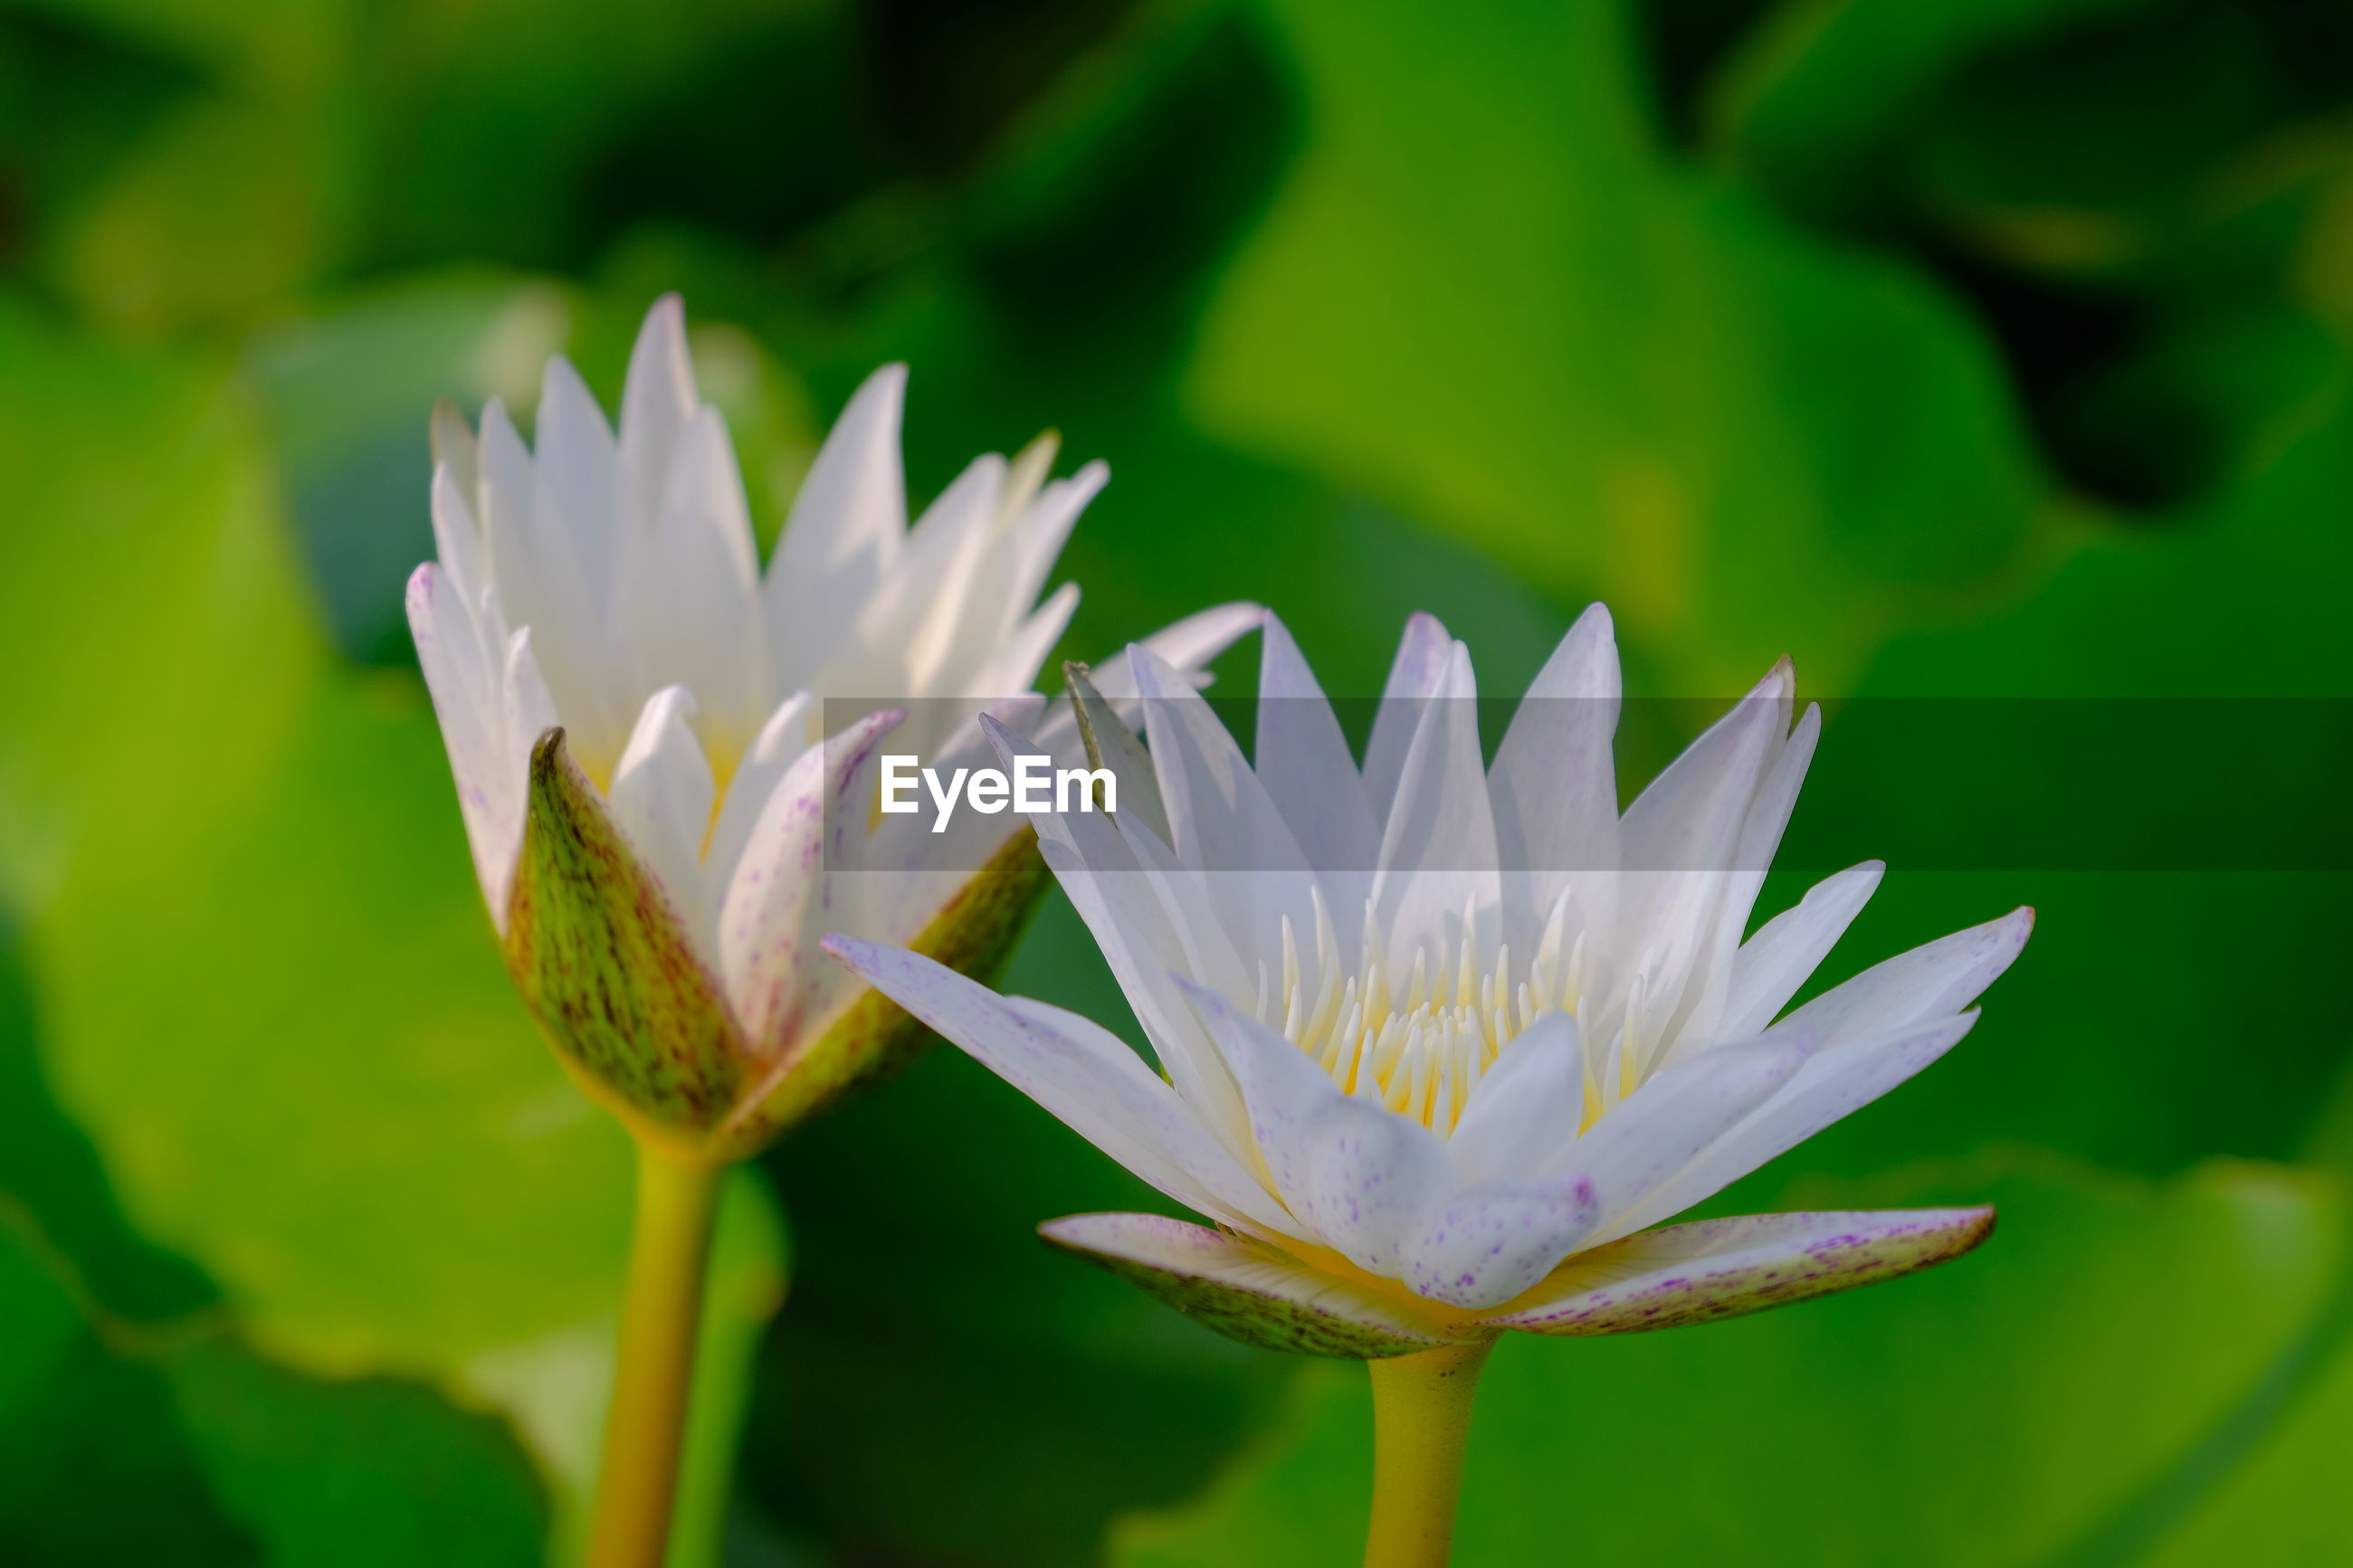 CLOSE-UP OF WATER LILY ON WHITE FLOWER